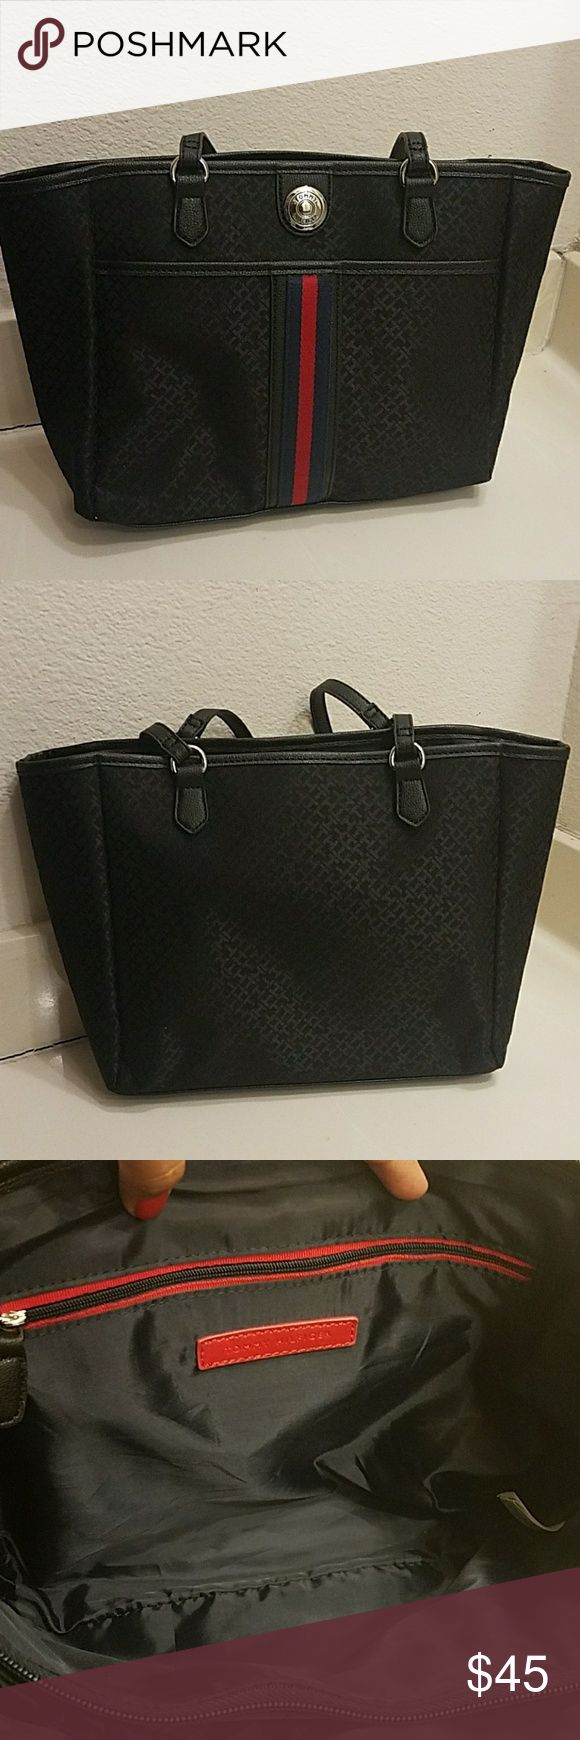 Tommy Hilfiger purse Tommy Hilfiger purse  Like new.. super clean and no stains or tears  Color Black whit the Tommy Hilfiger logo in the front. Tommy Hilfiger Bags Shoulder Bags